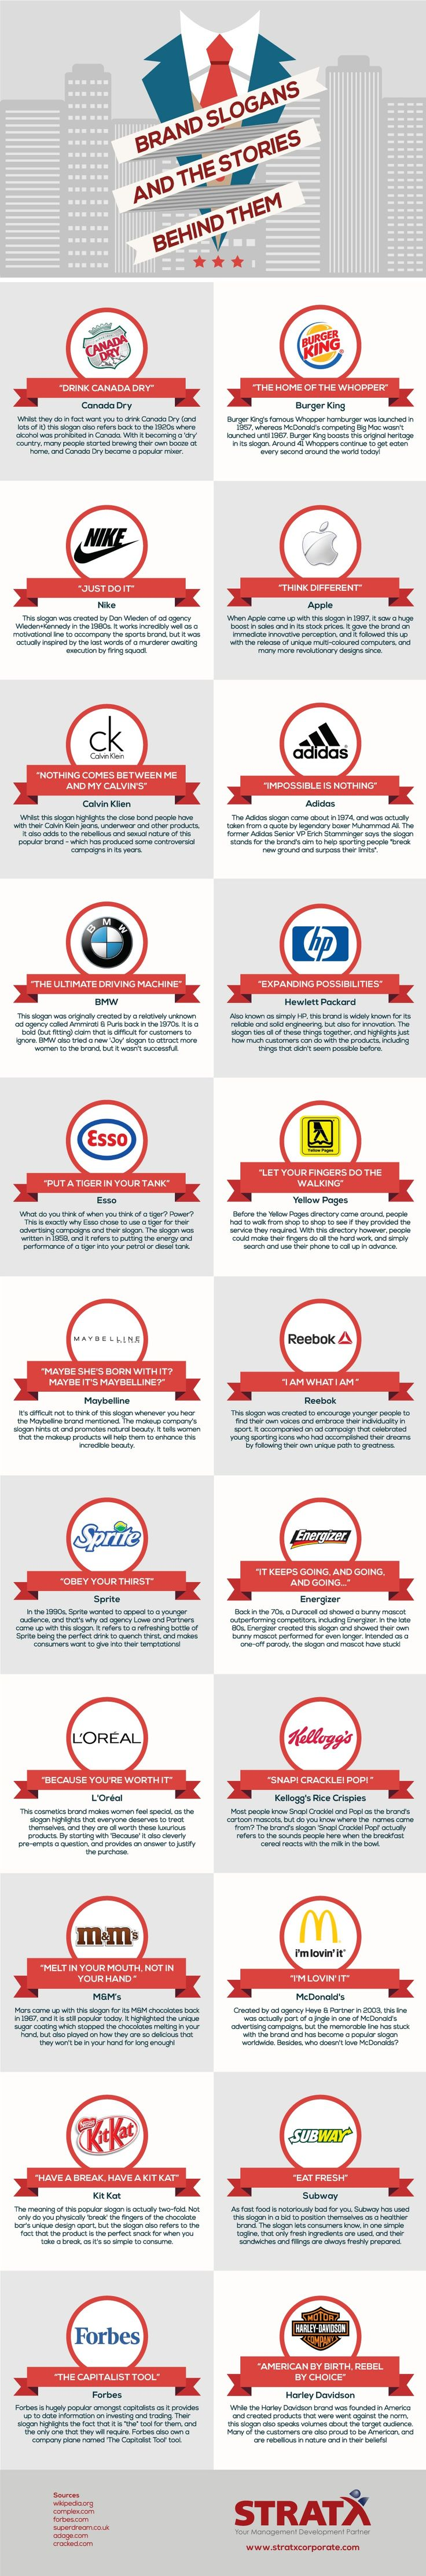 22 Famous Brand Slogans and the Little-Known Stories Behind Them [Infographic], via @HubSpot